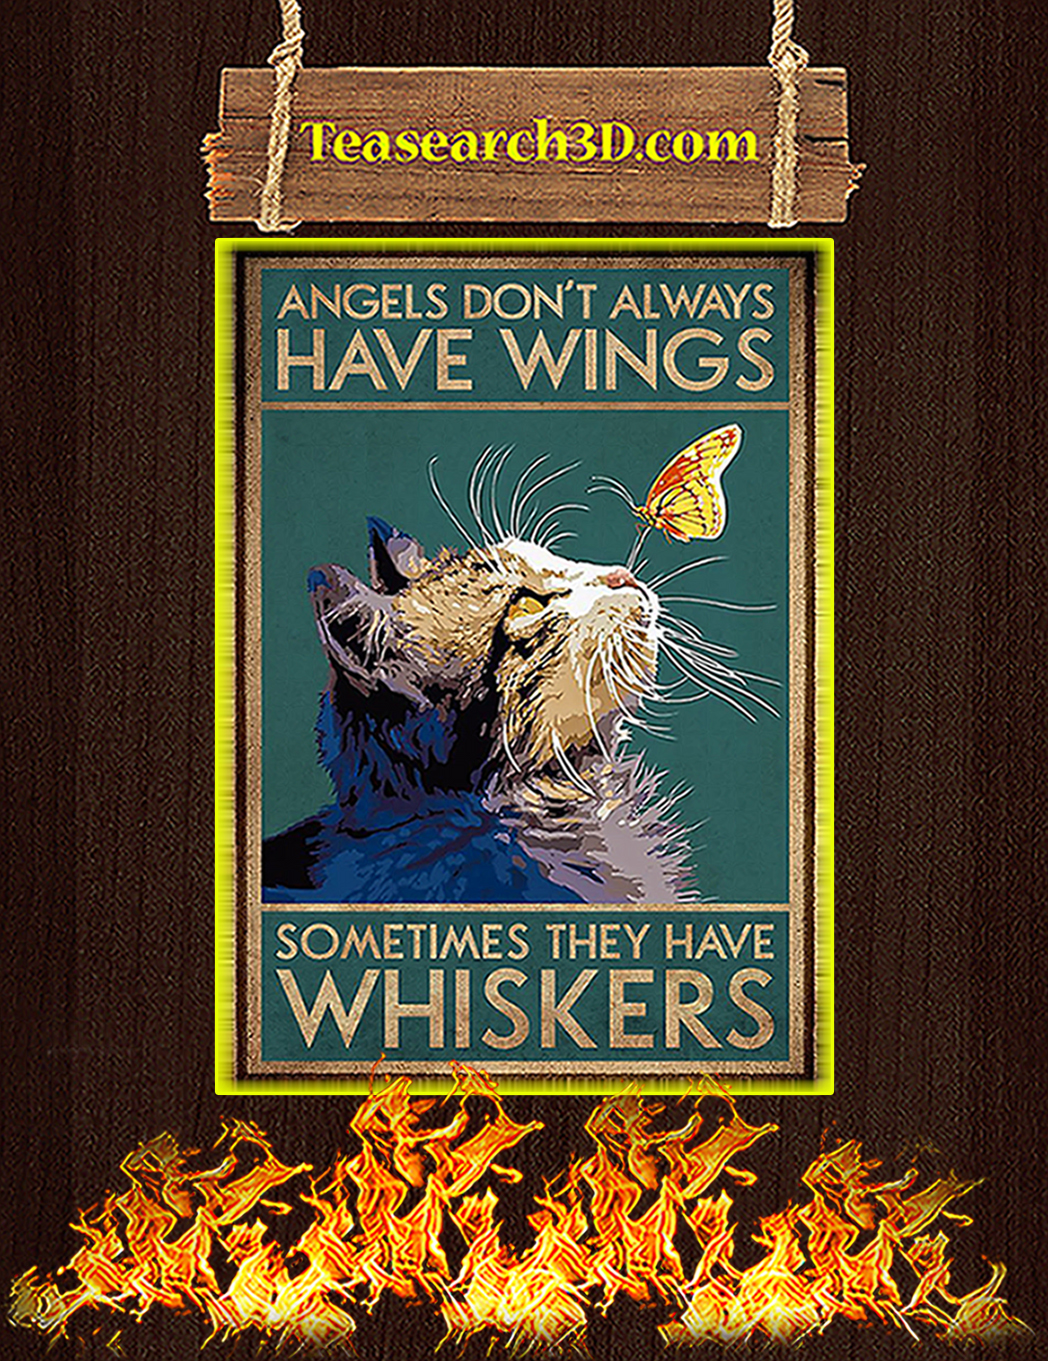 Cat Angels don't alway have wings sometimes they have whiskers poster A1